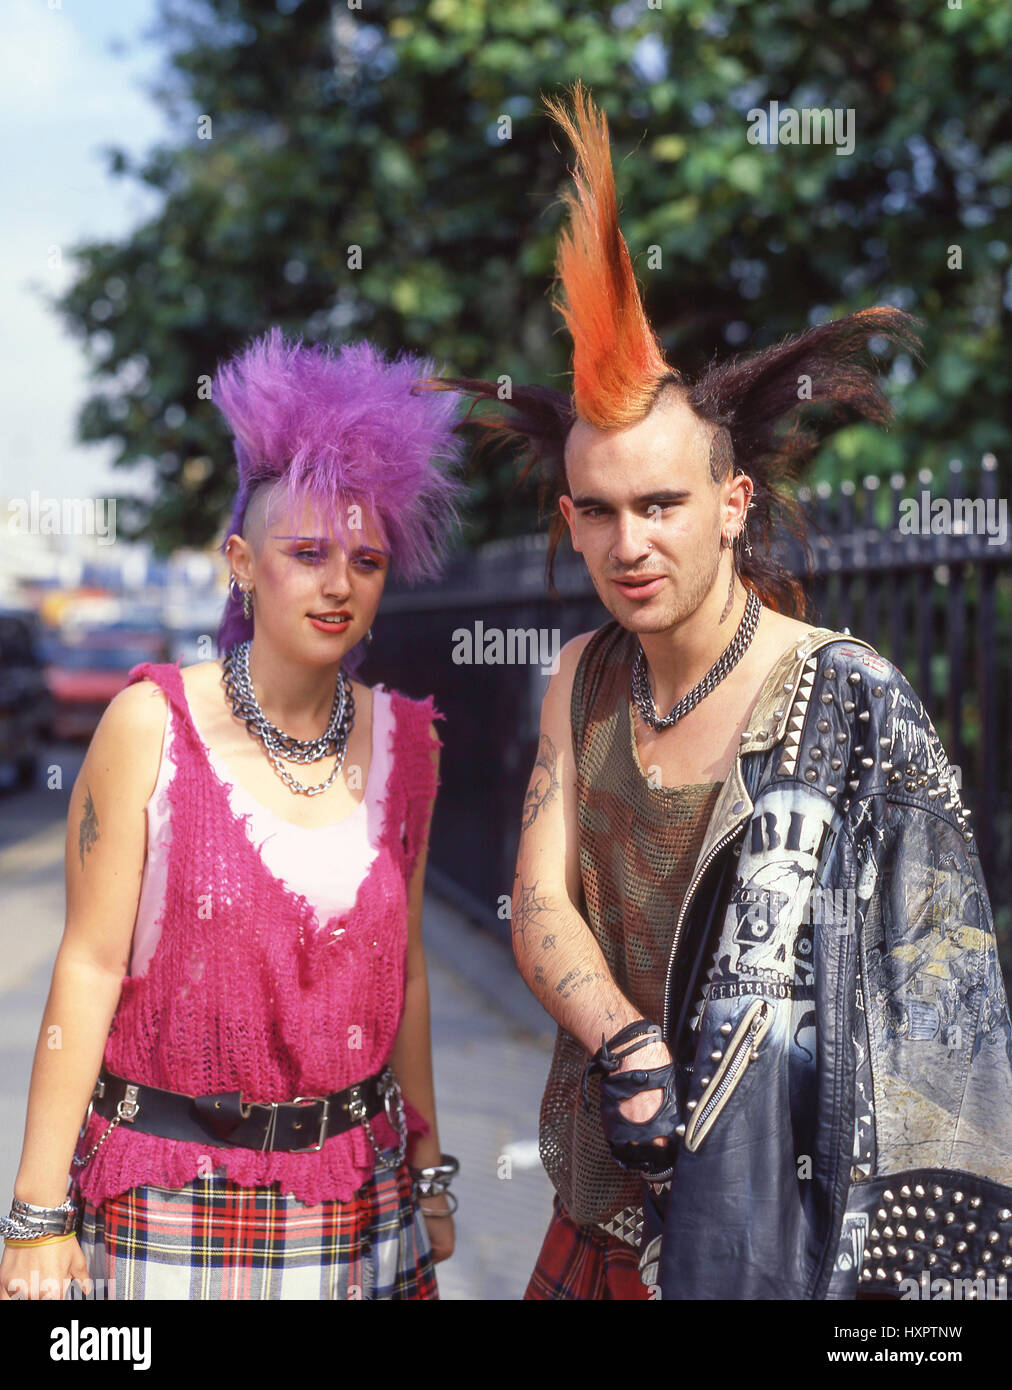 Young Punk couple on street, Fitzrovia, City of Westminster, Greater London, England, United Kingdom - Stock Image